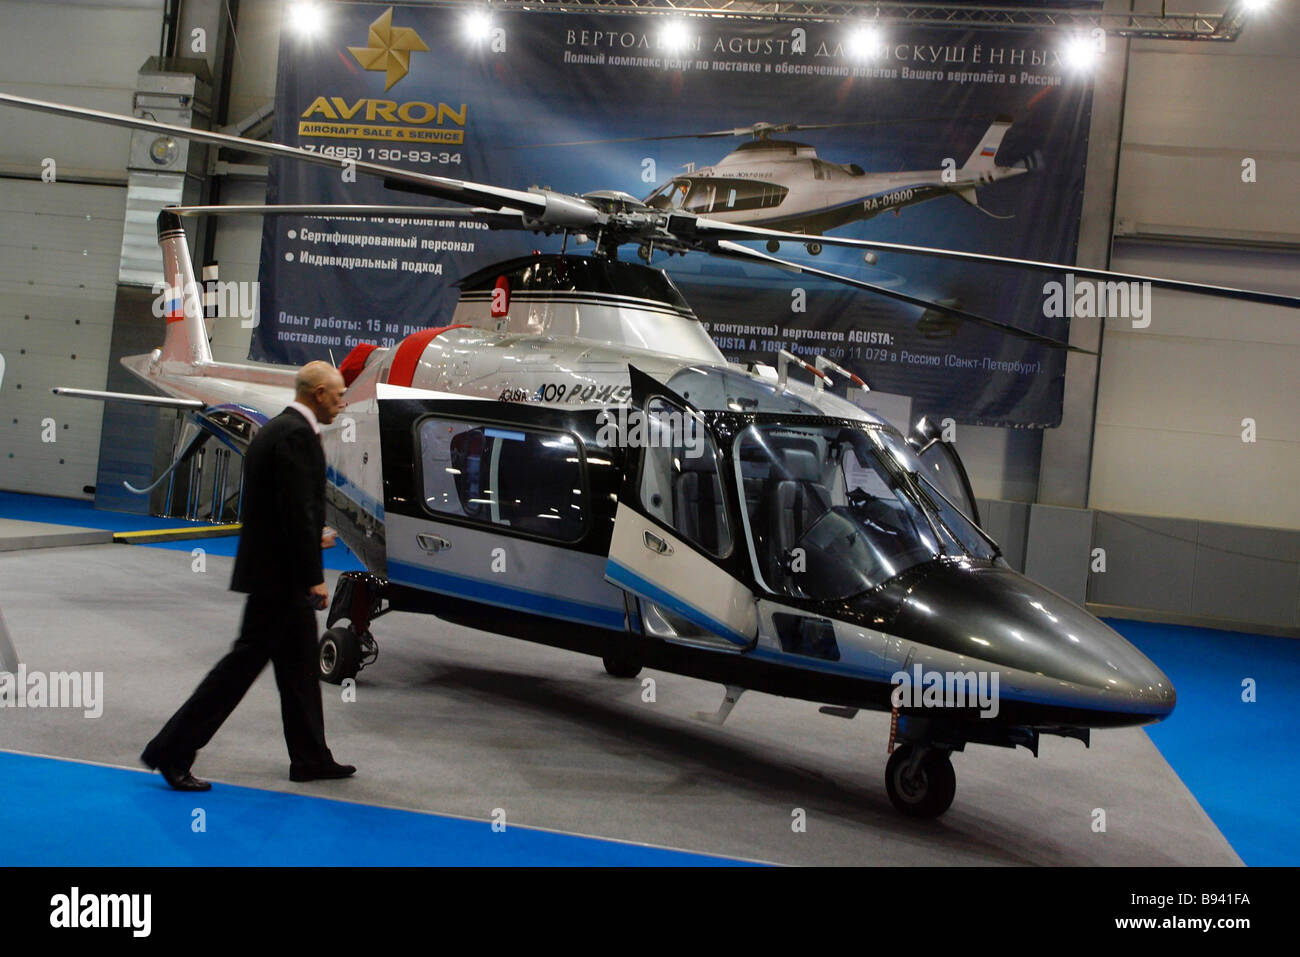 A helicopter Power at the 2nd International Business Aviation Exhibition Jet Expo 2007 Crocus Expo - Stock Image